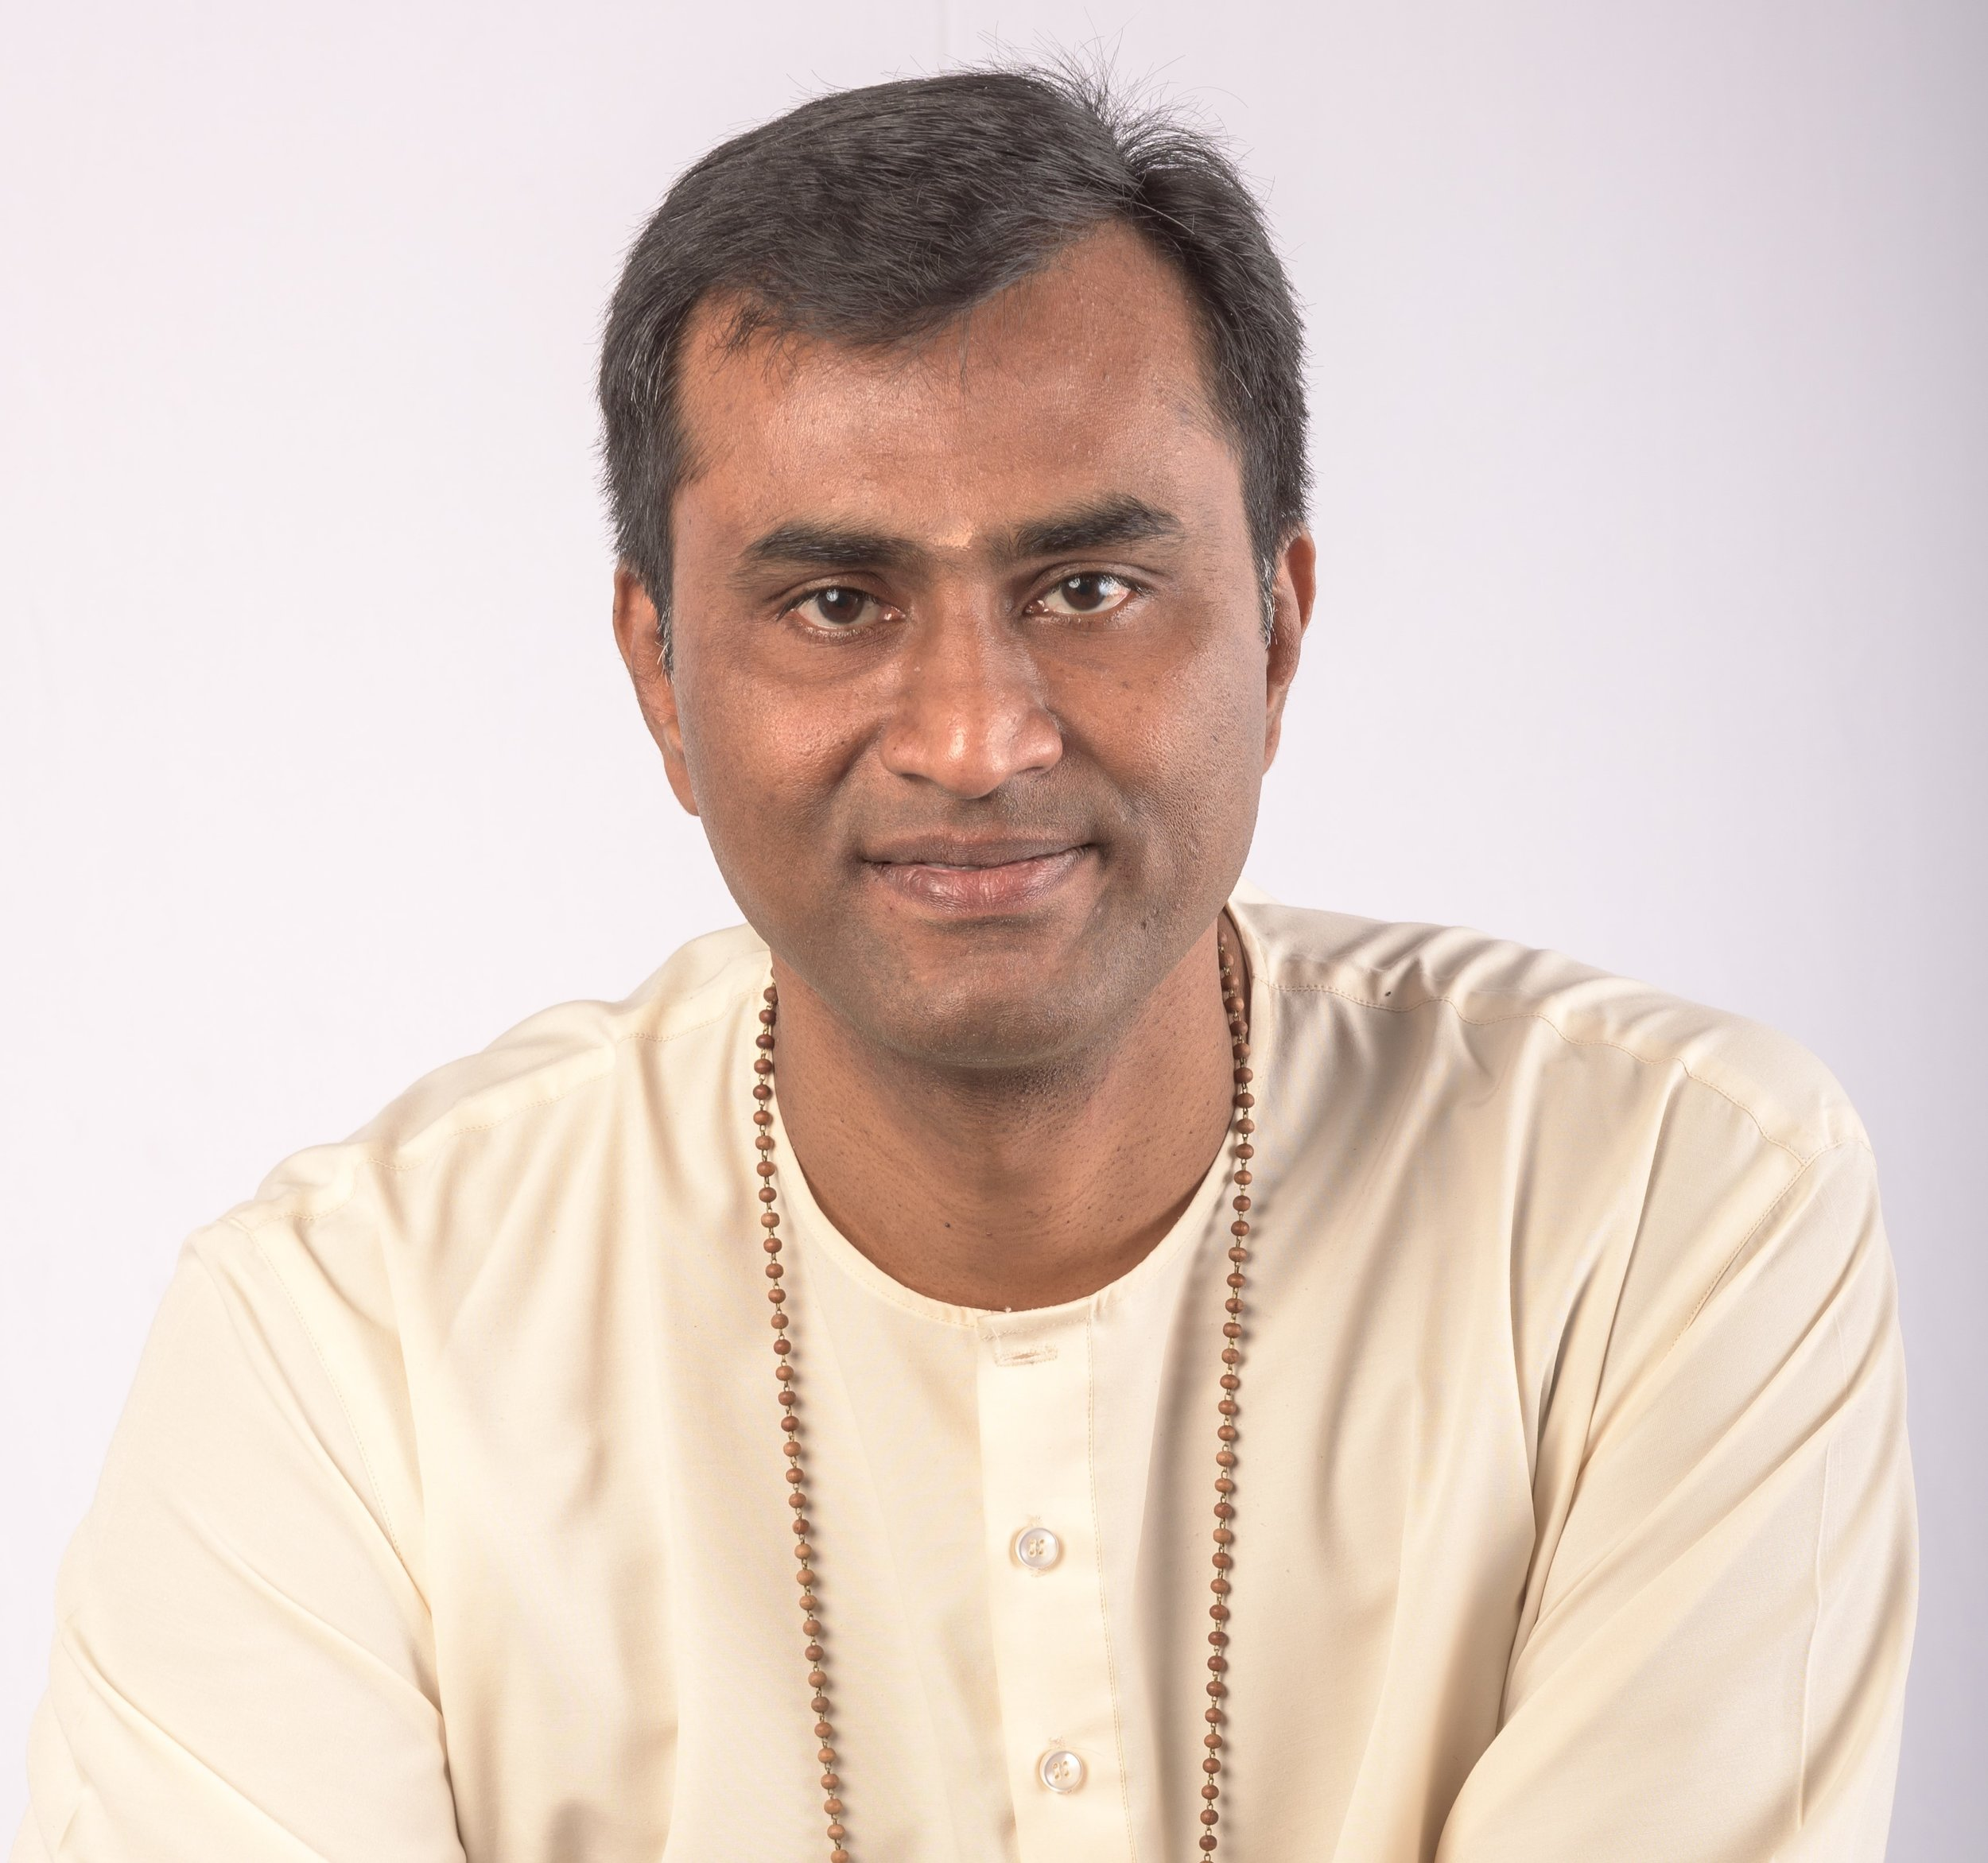 About the Speaker - Rangarajan is a disciple of Swami Parthasarathy. Formerly, a CMA professional with Masters in Management, Rangarajan completed a six-year residential study on Vedanta at the Vedanta Academy in India. Inspired by the contemporary and versatile application of Vedanta, in the past 19 years, he has been conducting introductory lectures, management learning workshops, structured weekly courses and residential retreats on Vedanta. These programs encourage a variety of audience to pursue Vedanta & its pragmatic application to daily life.